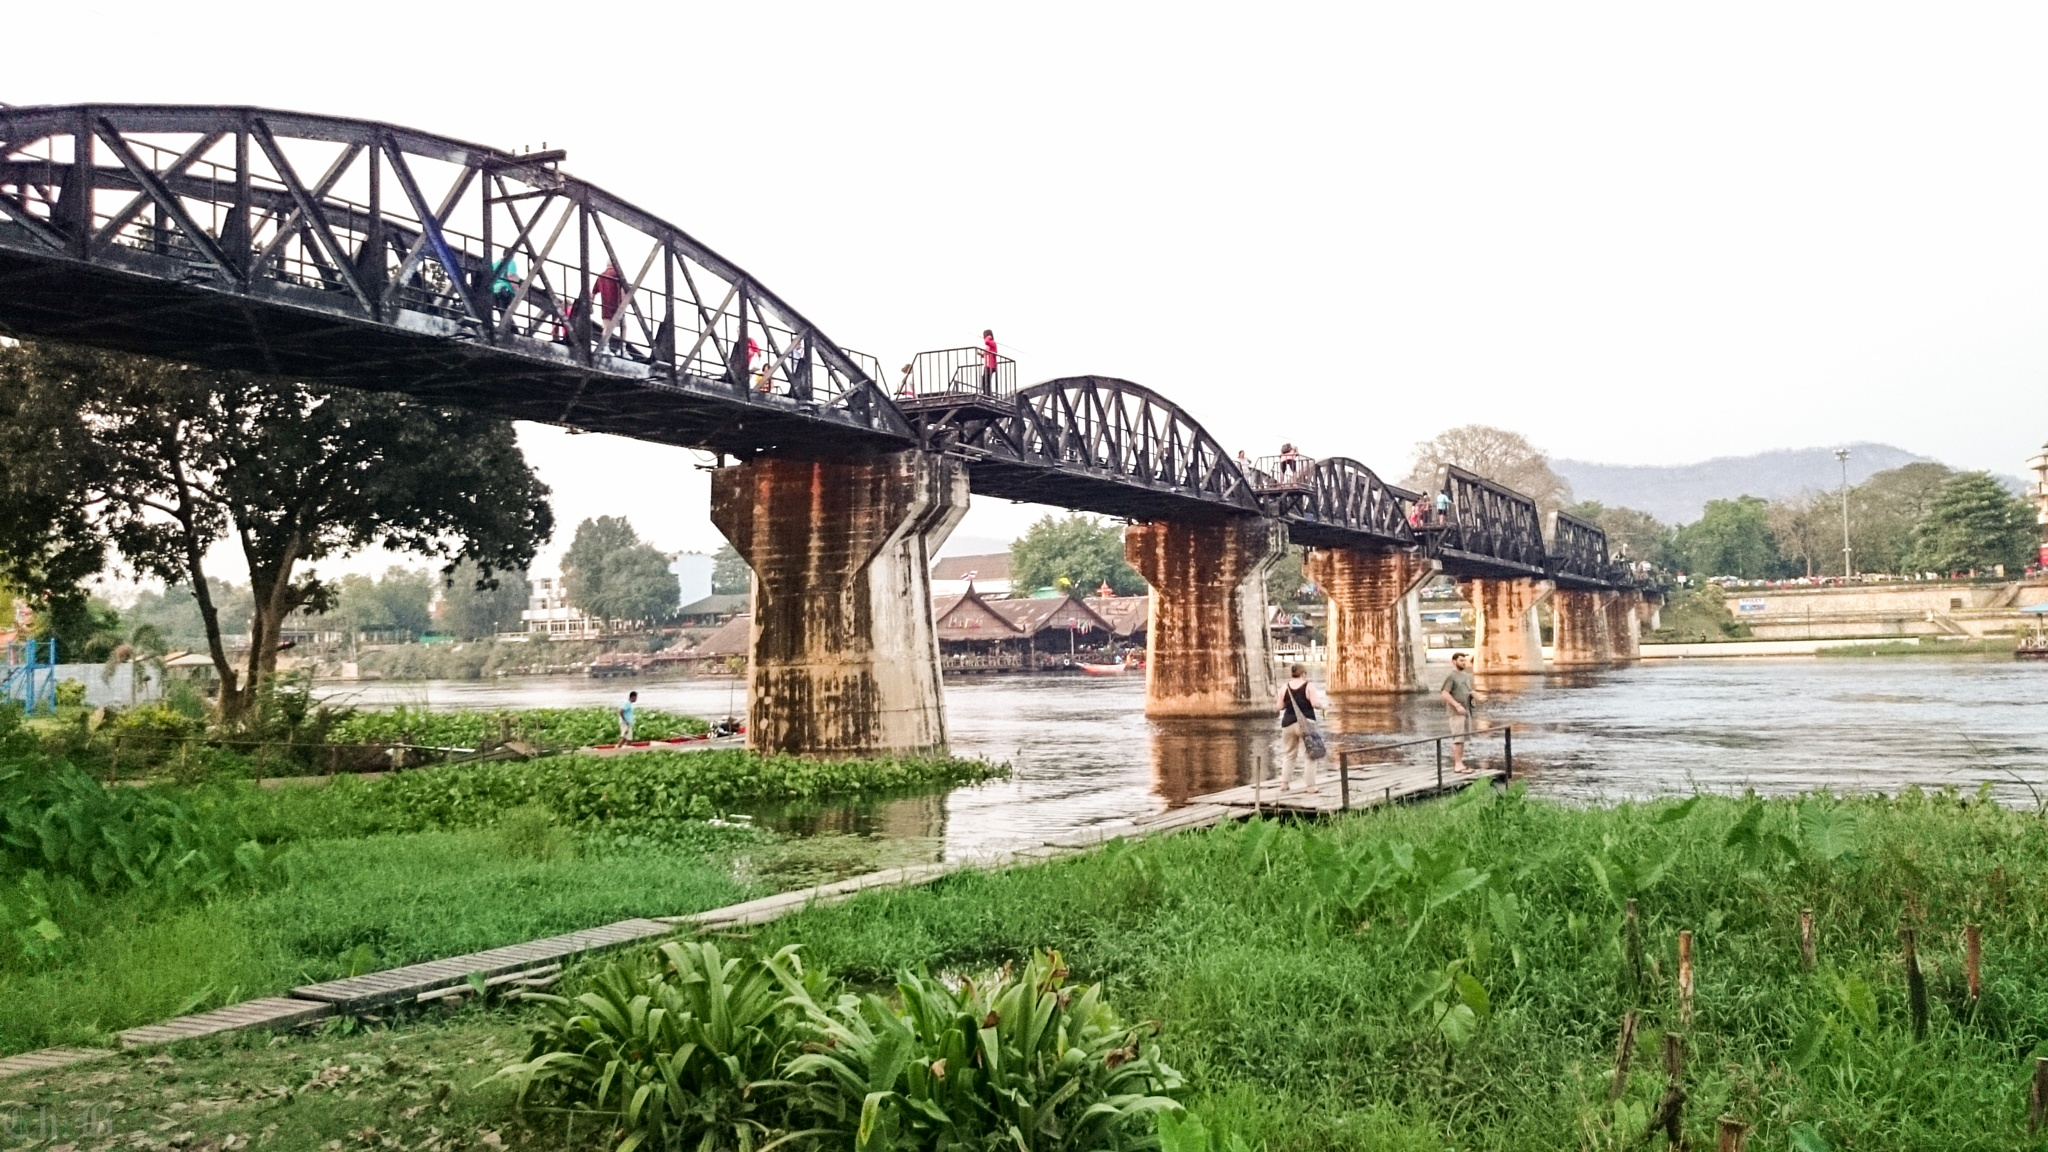 River Kwai by Chairat Buntaotook